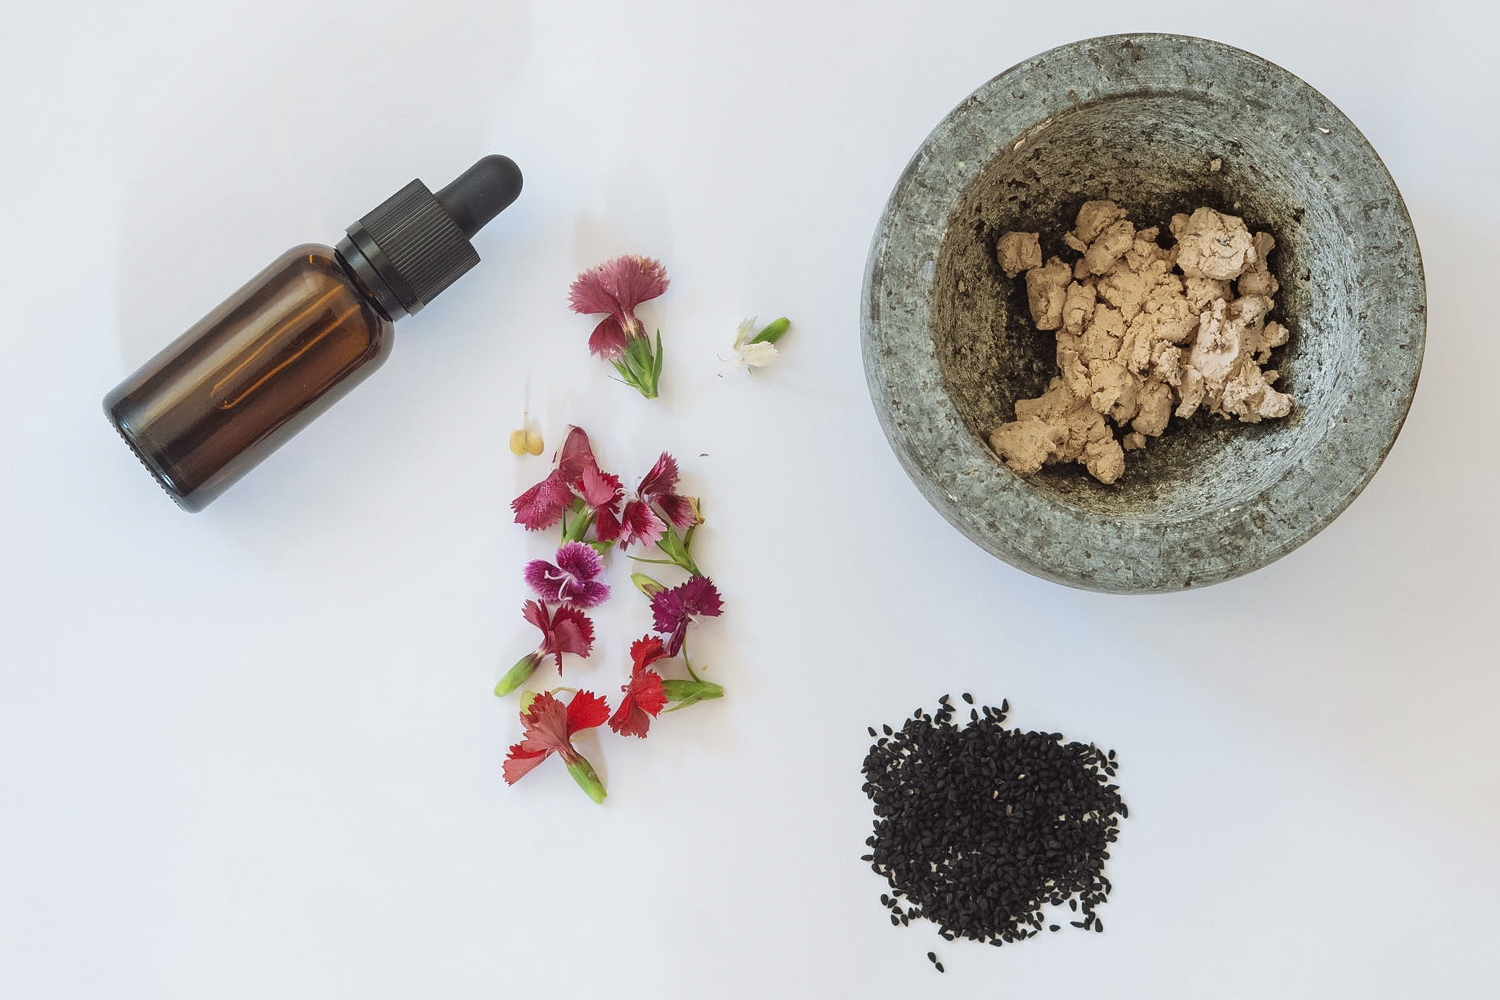 few skincare ingredients and a dropper bottle on a plain background